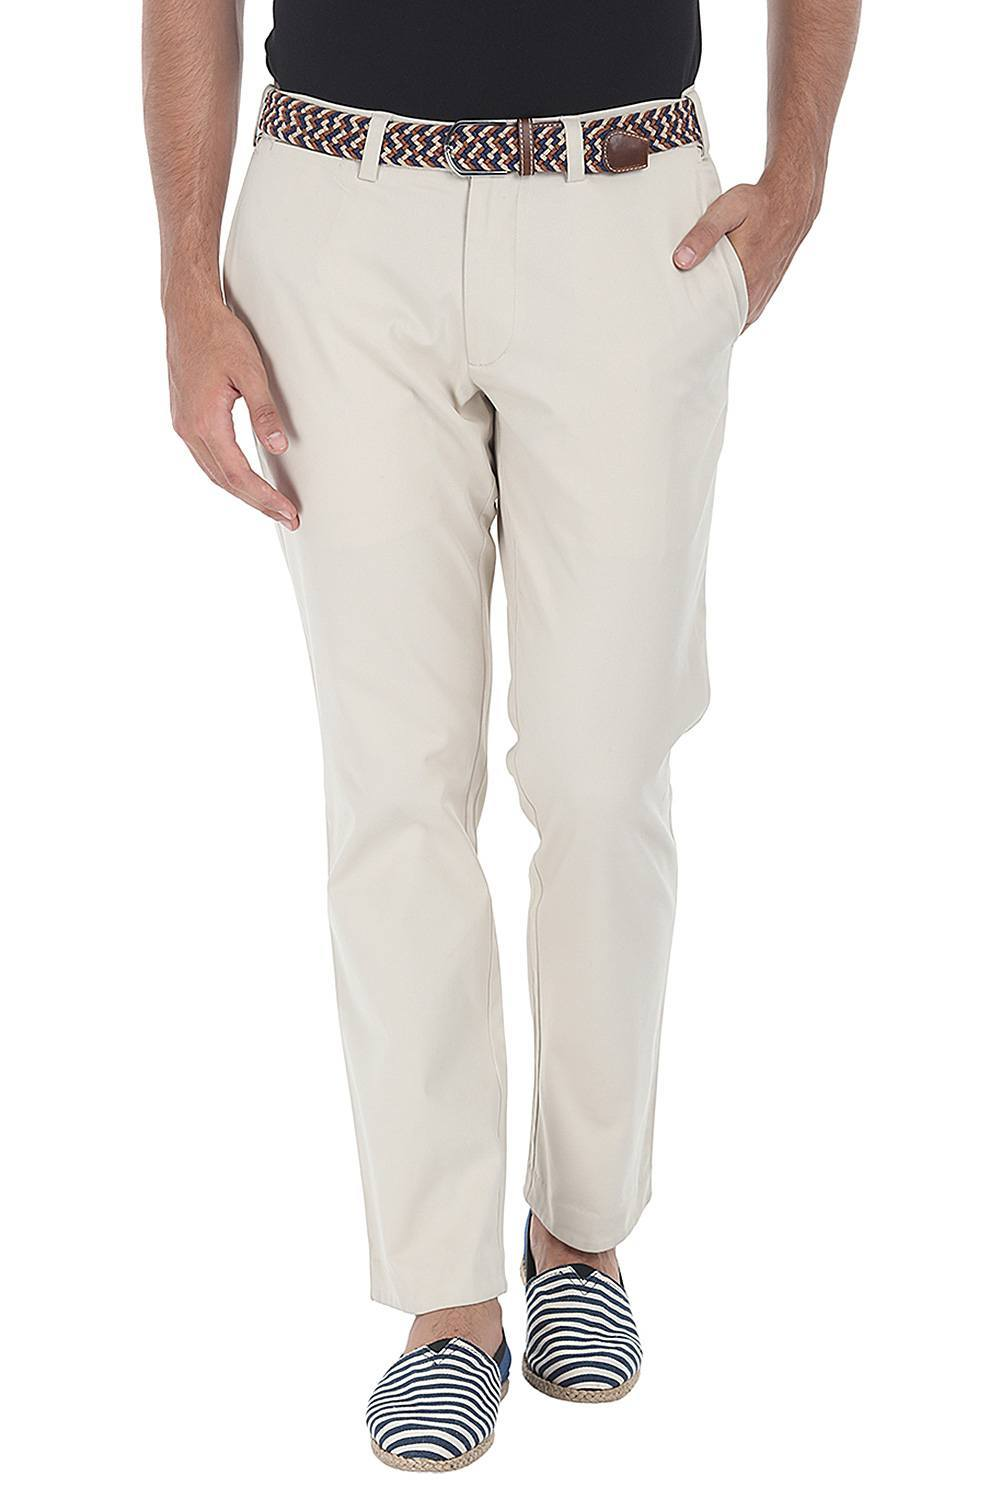 b62aa3510ce Buy Online Cotton Peach Twill Chino Pants Online in India at zobello ...